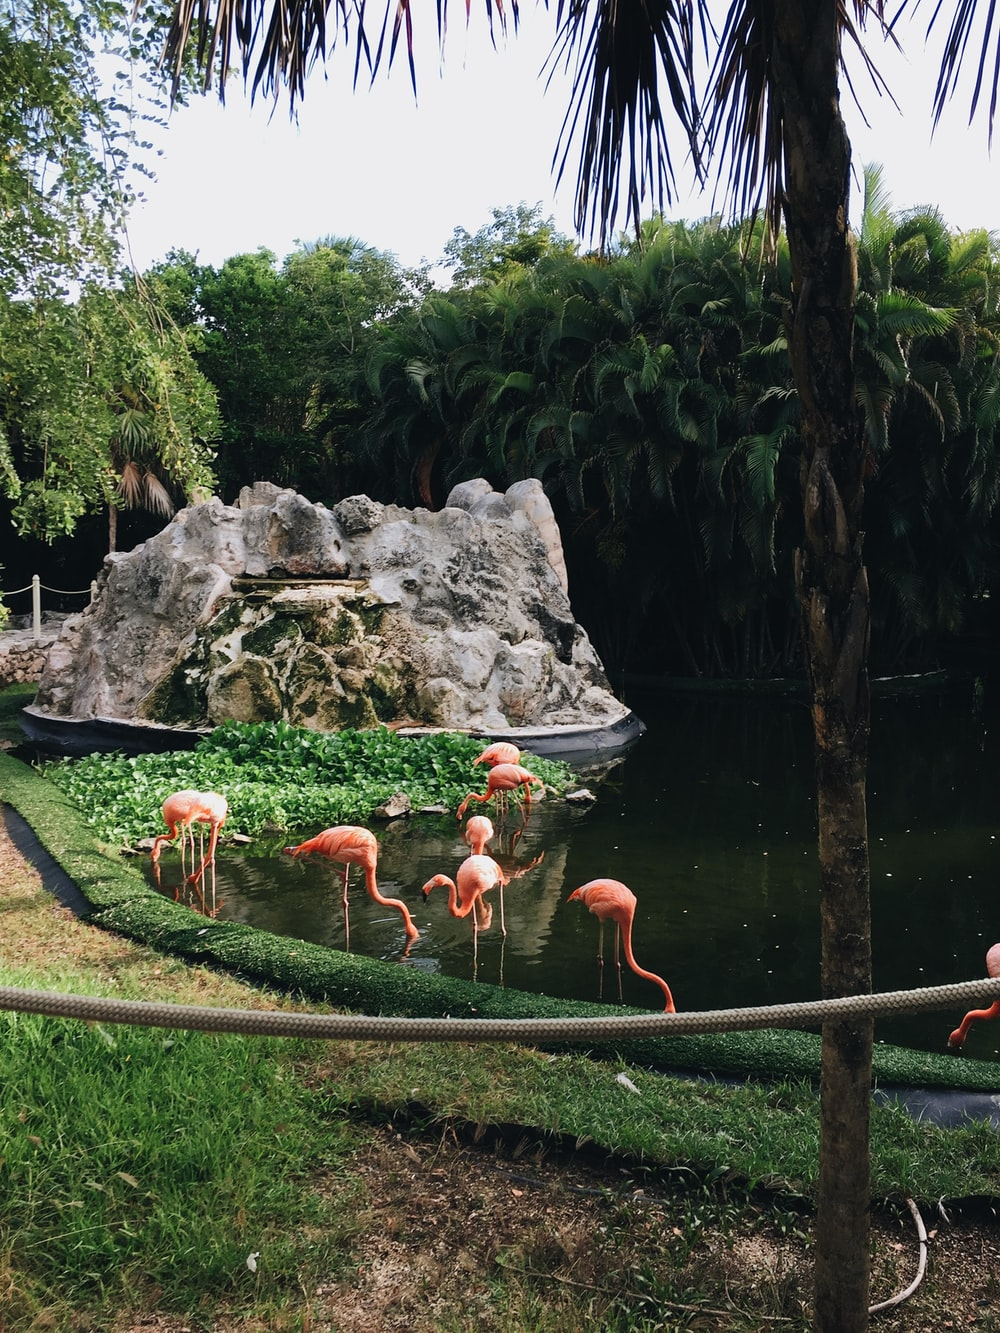 orange and white flamingos on water